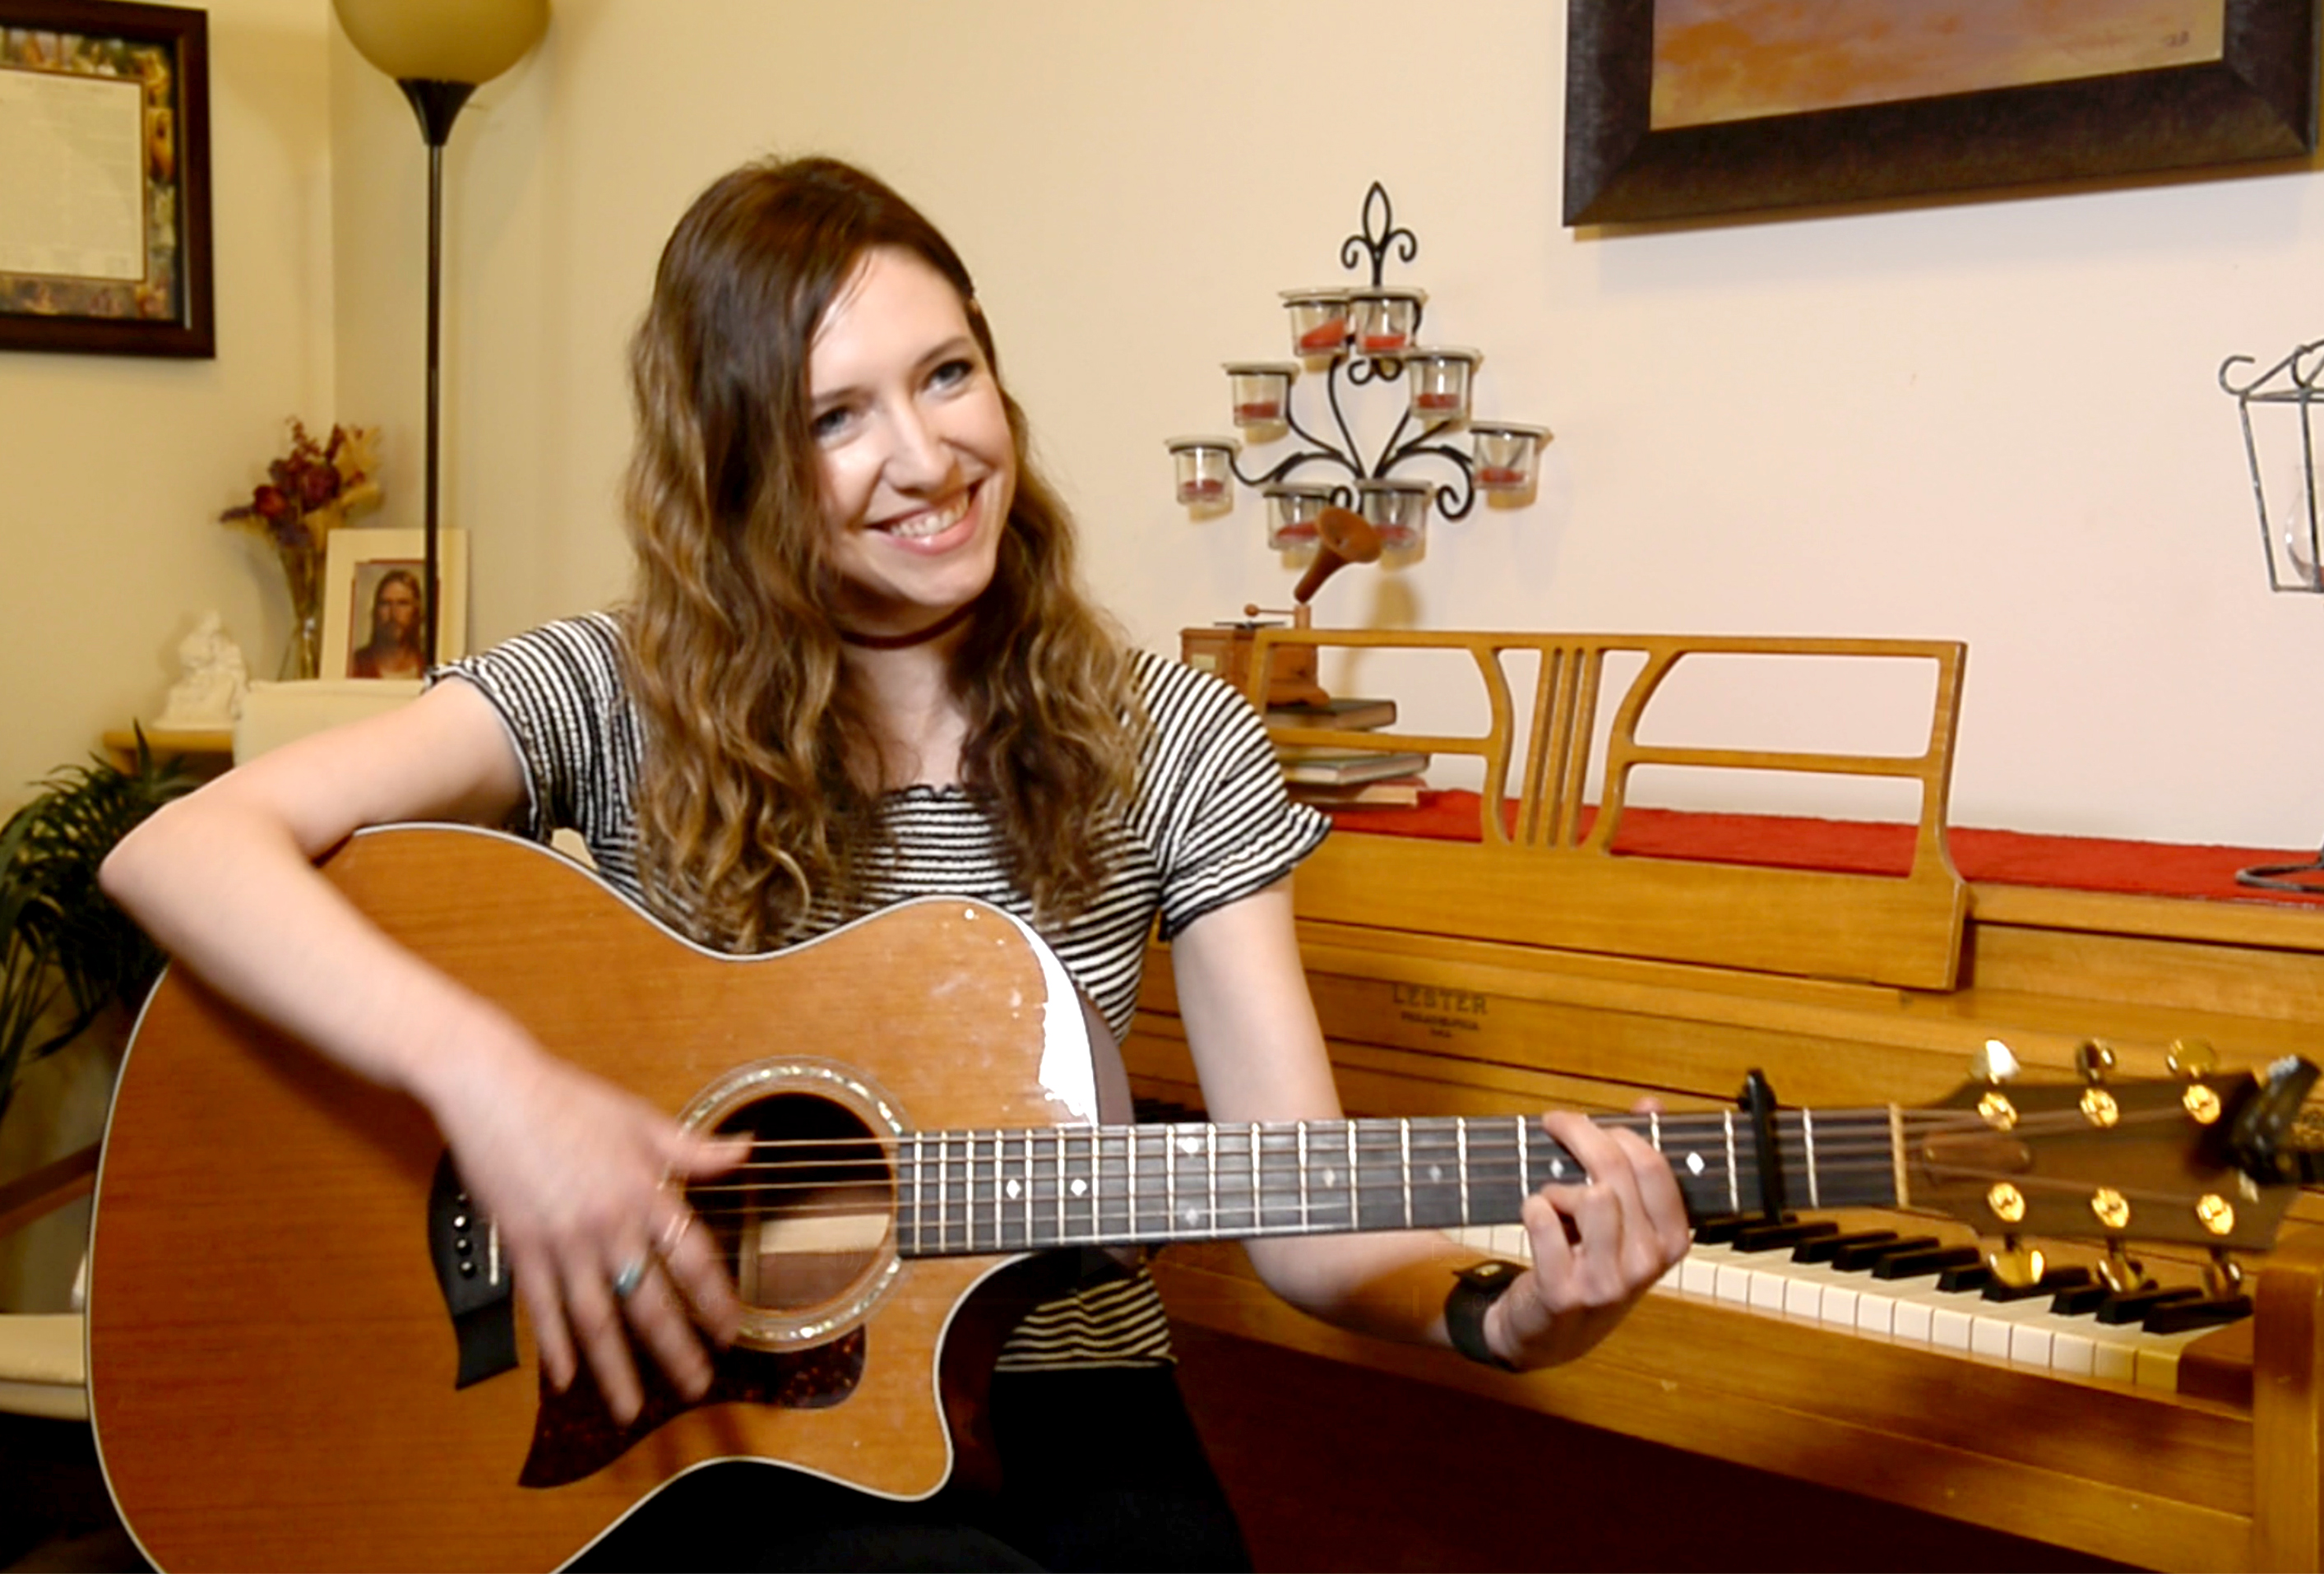 "(Rick Egan  |  The Salt Lake Tribune) April Meservy plays the guitar at her home in Provo on Wednesday, Febr. 7, 2018. Meservy recorded a cover of U2's ""With or Without You,""  which will be used by Canadian pairs figure skaters Eric Radford and Meagan Duhamel  as they perform at this year's Winter Olympic Games in PyeongChang, South Korea."